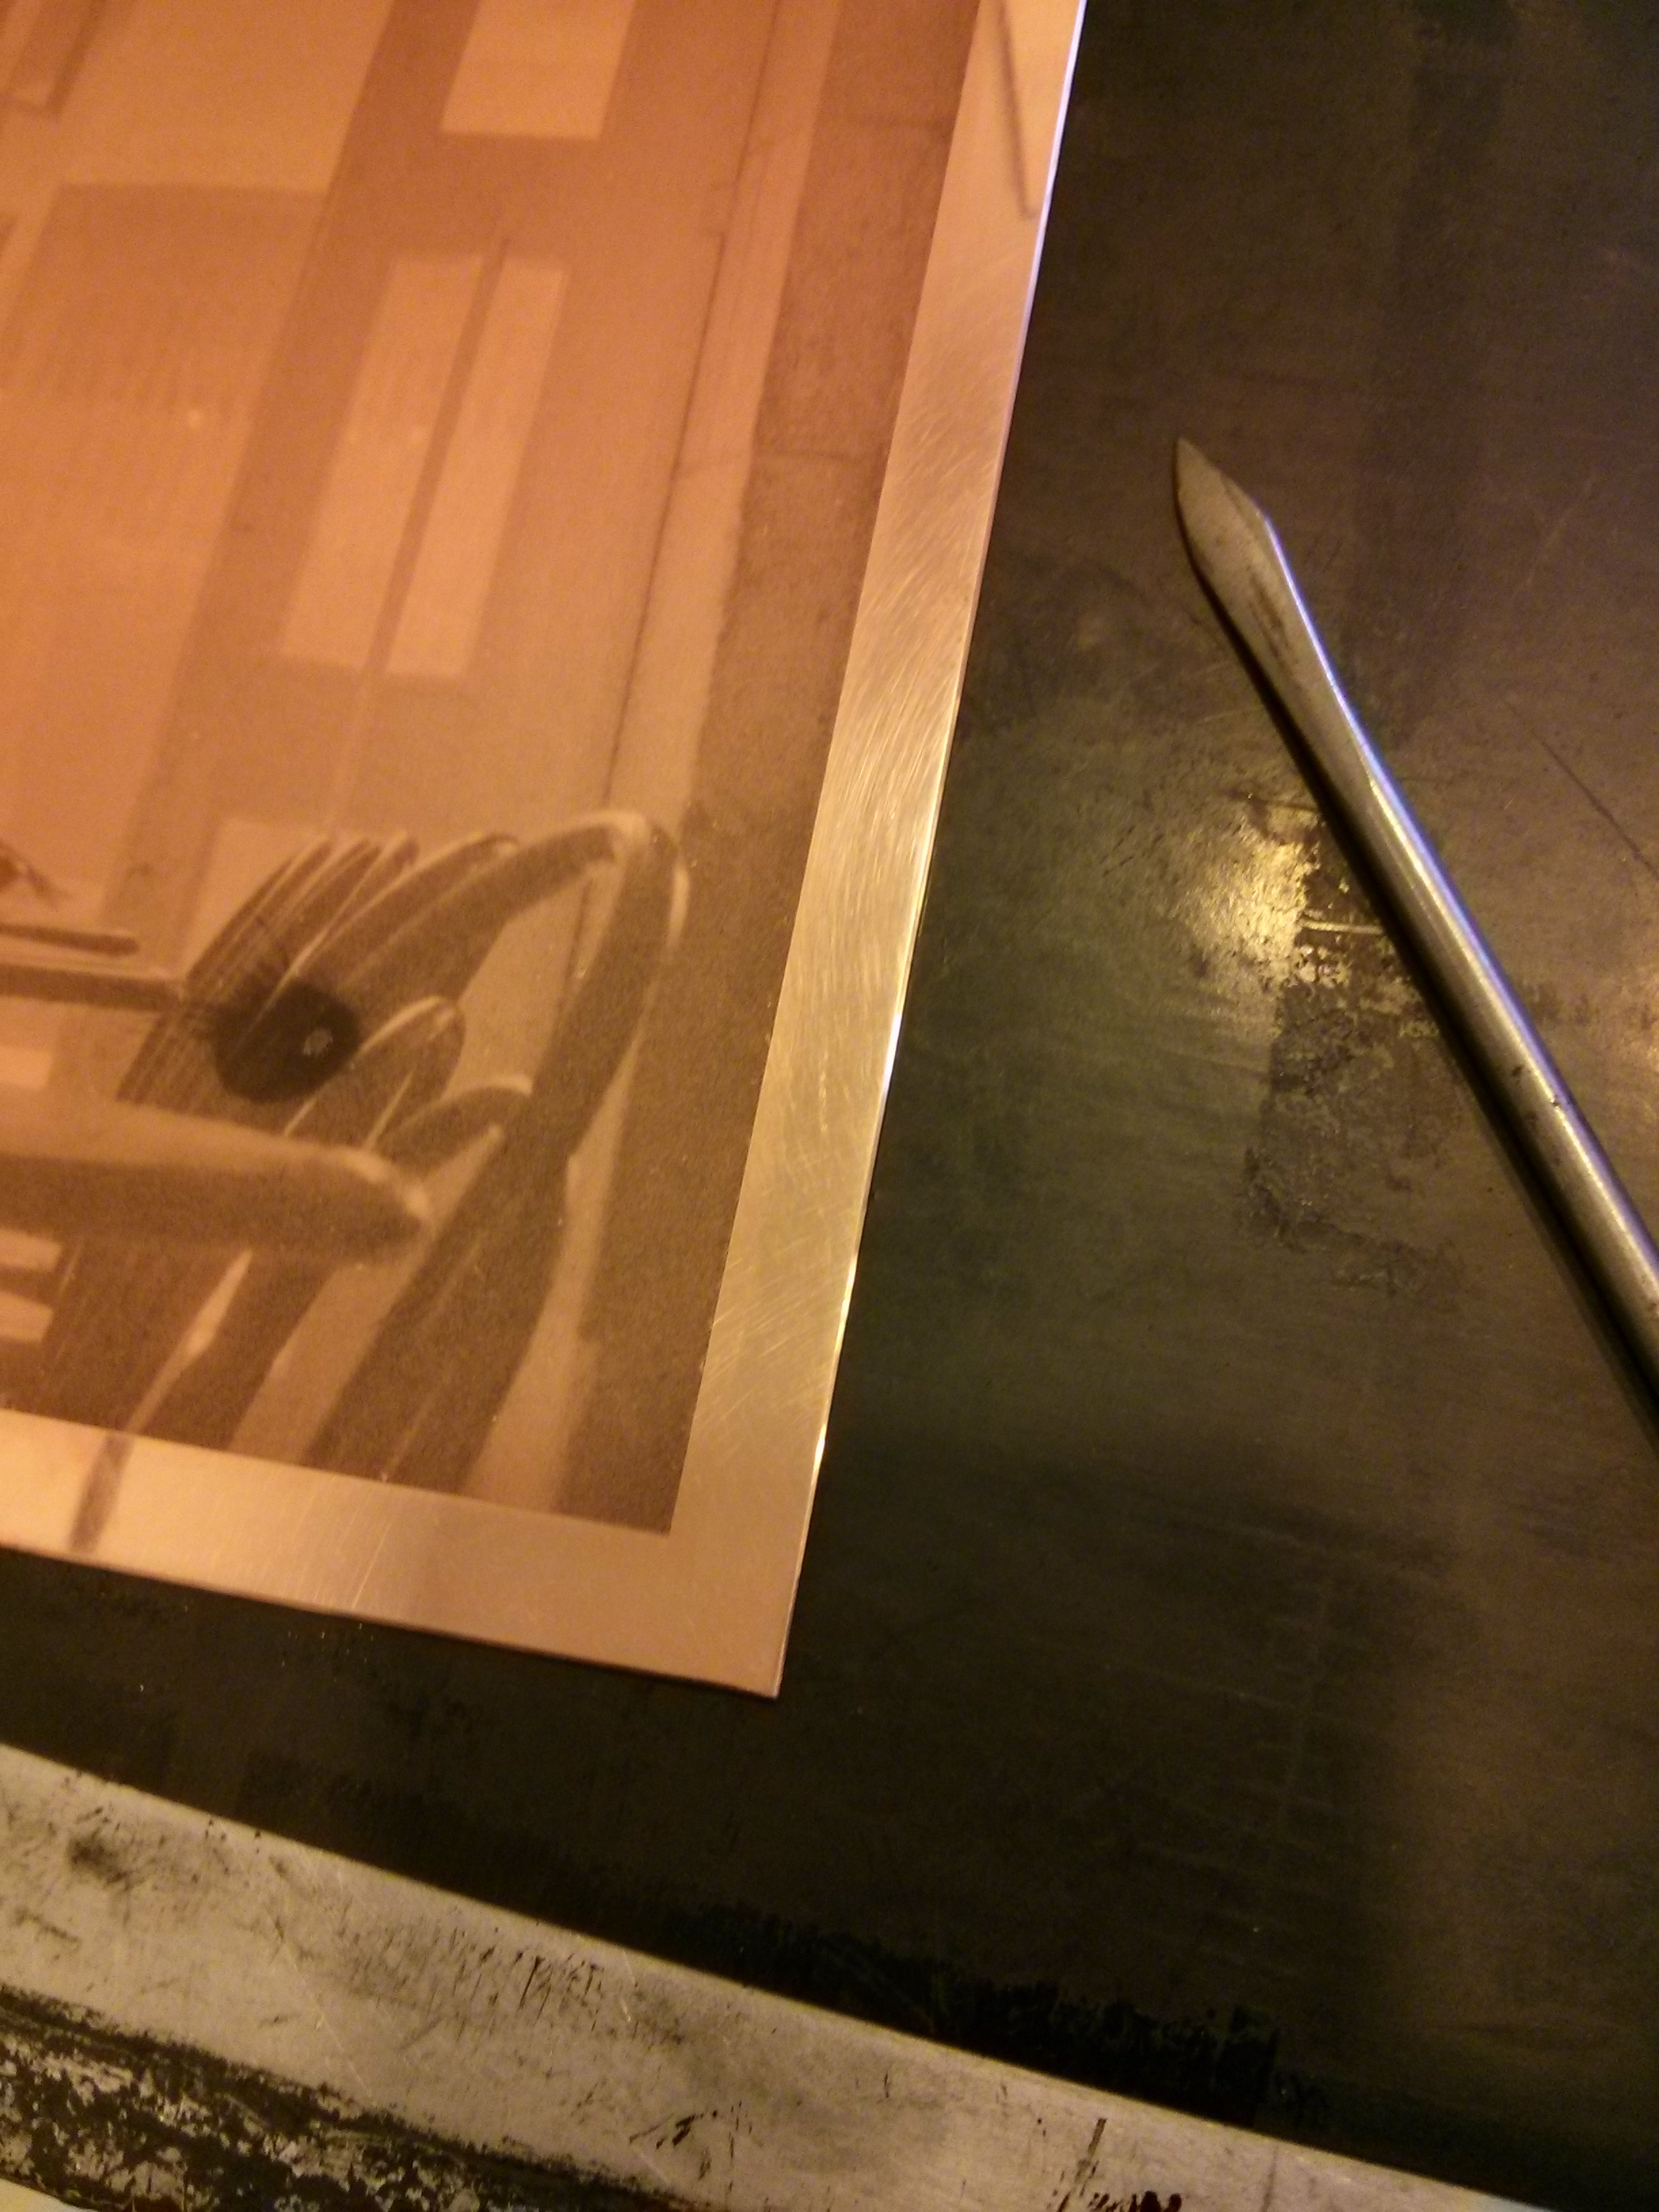 Stippling a defect in a plate. Photoshop 19th century style.